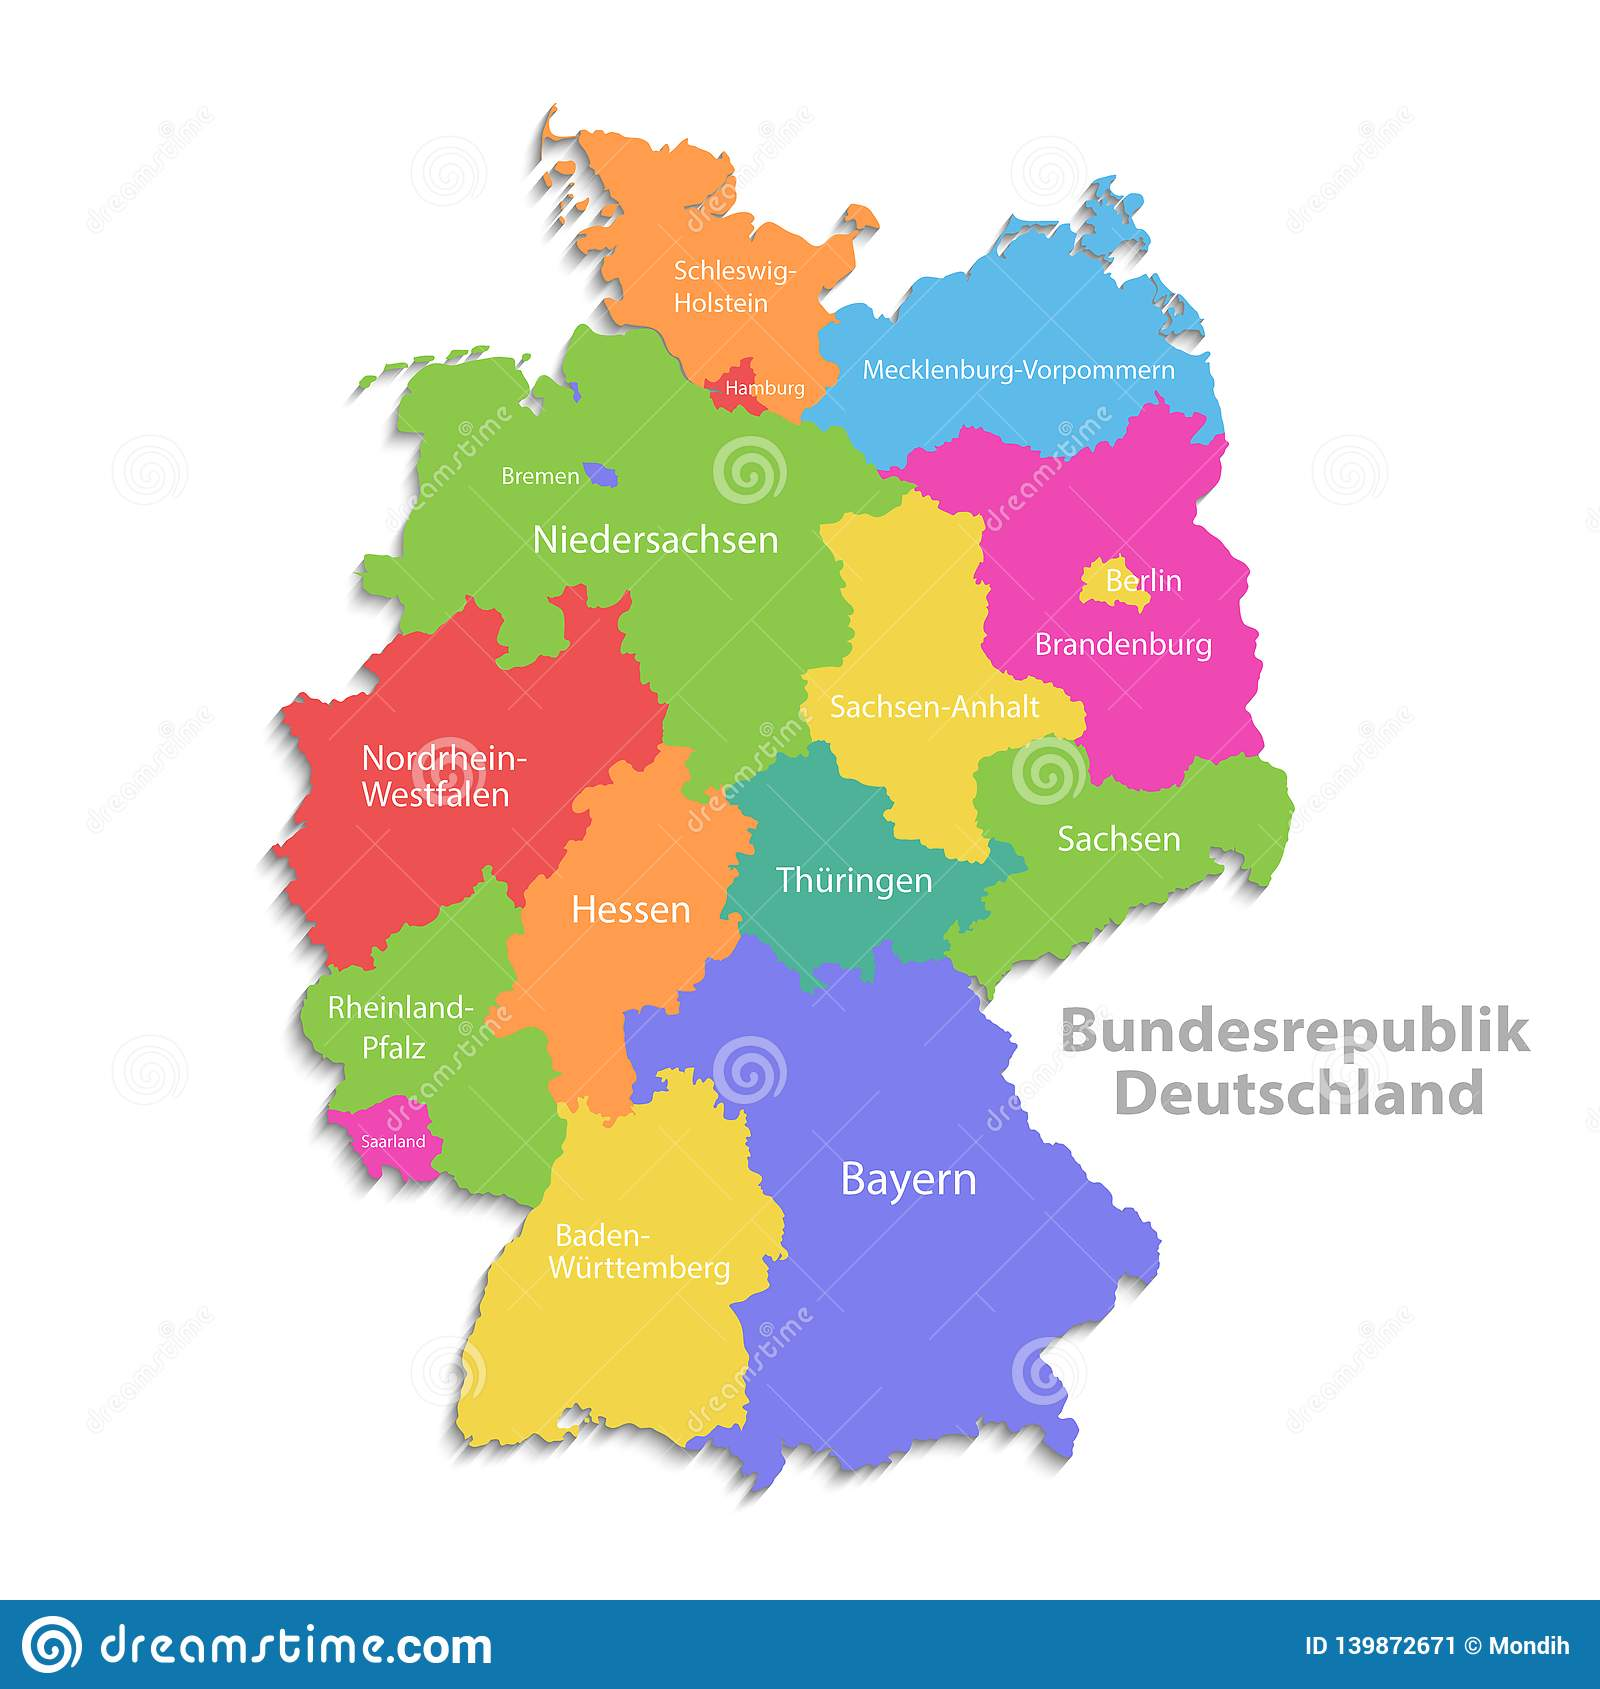 Germany Map, New Political Detailed Map, Separate Individual ... on geographical map of germany, geographic map of germany, regional map of germany, social map of germany, geological map of germany, physiological map of germany, strategic map of germany, topological map of germany, industrial map of germany, linguistic map of germany, tactical map of germany, topographical map of germany, operational map of germany, religious map of germany, language map of germany, ethnic map of germany, commodities map of germany, fiscal map of germany, global map of germany, economic map of germany,